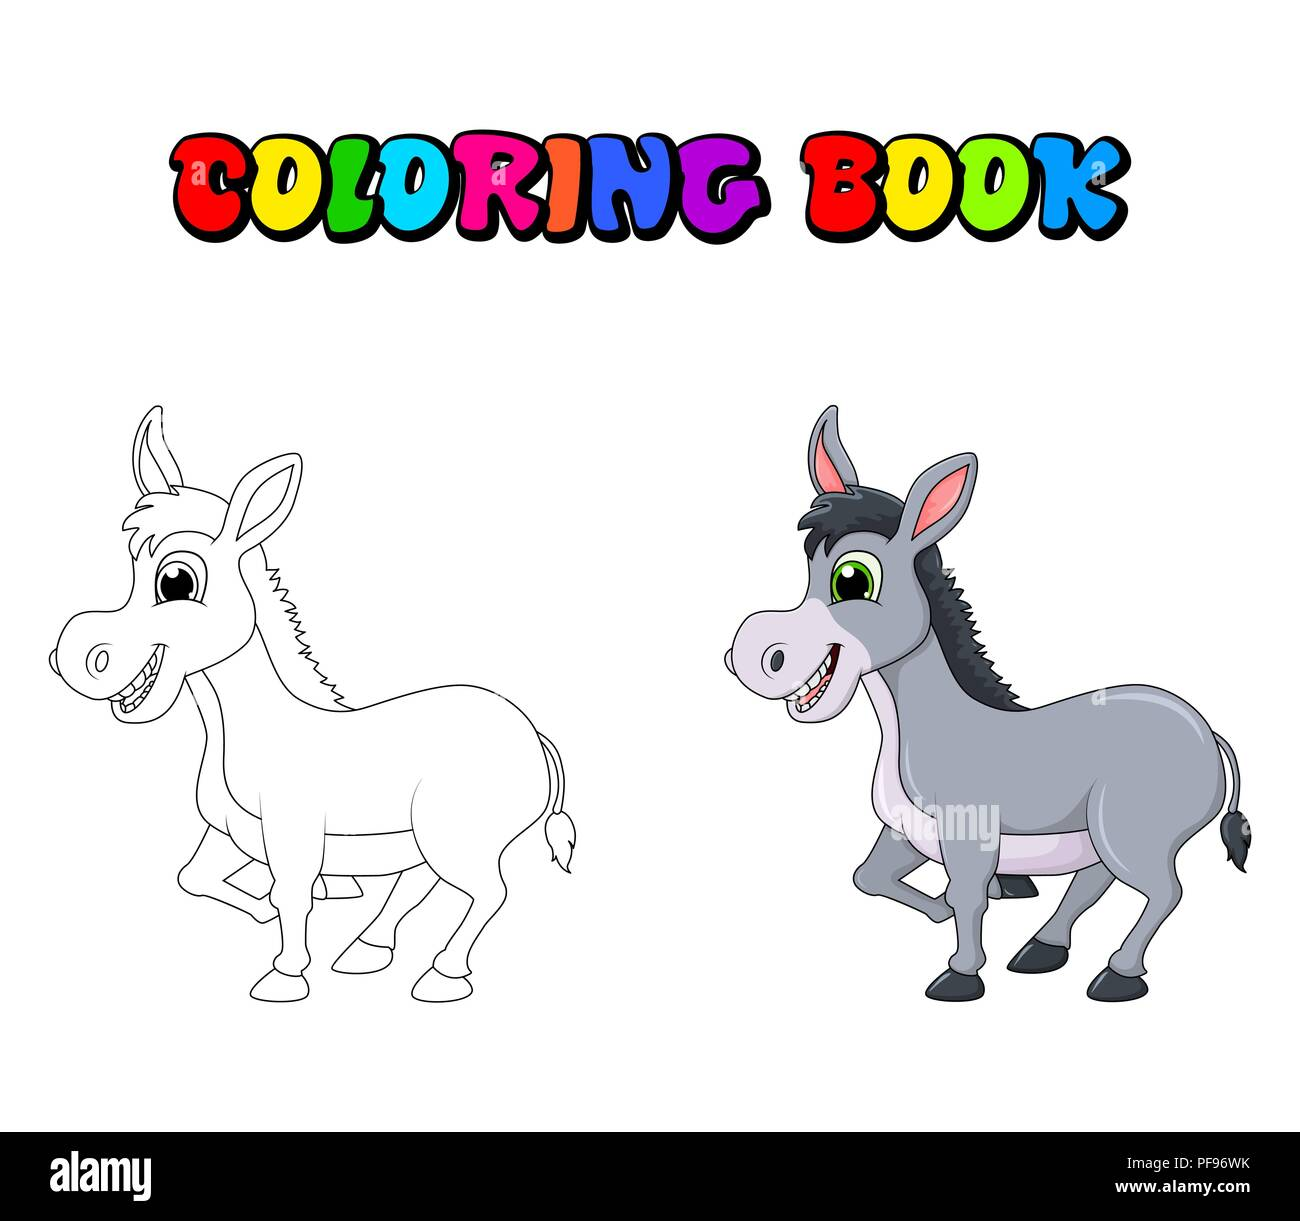 donkey cartoon character coloring book vector design isolated on white background - Stock Image